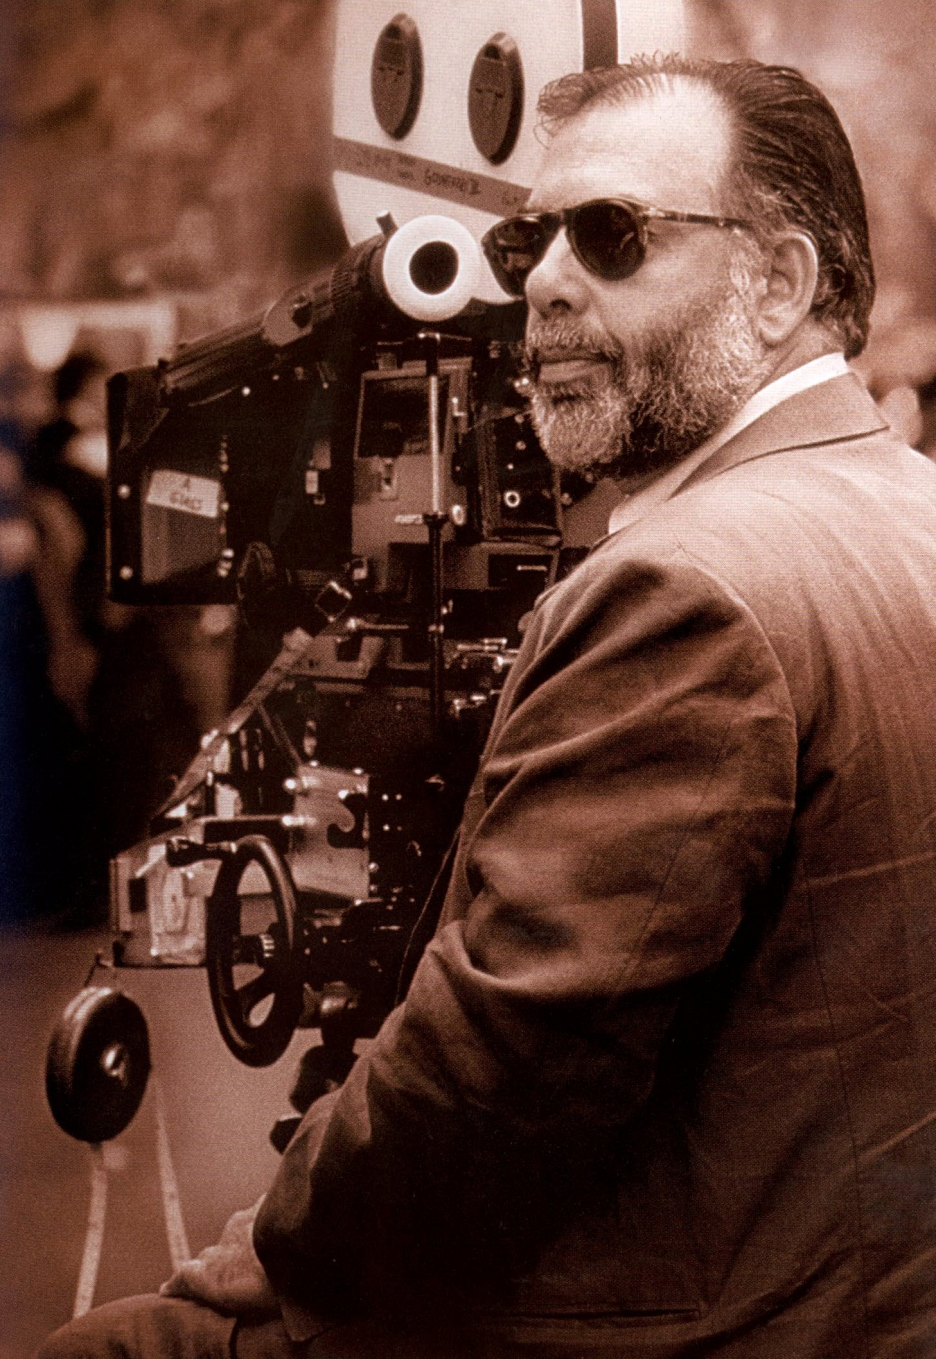 an analysis of the art style of francis ford coppola a film director Francis ford coppola takes the same approach to wine  writer-director francis ford coppola gathered the cast and crew at  that's also what makes a coppola film.